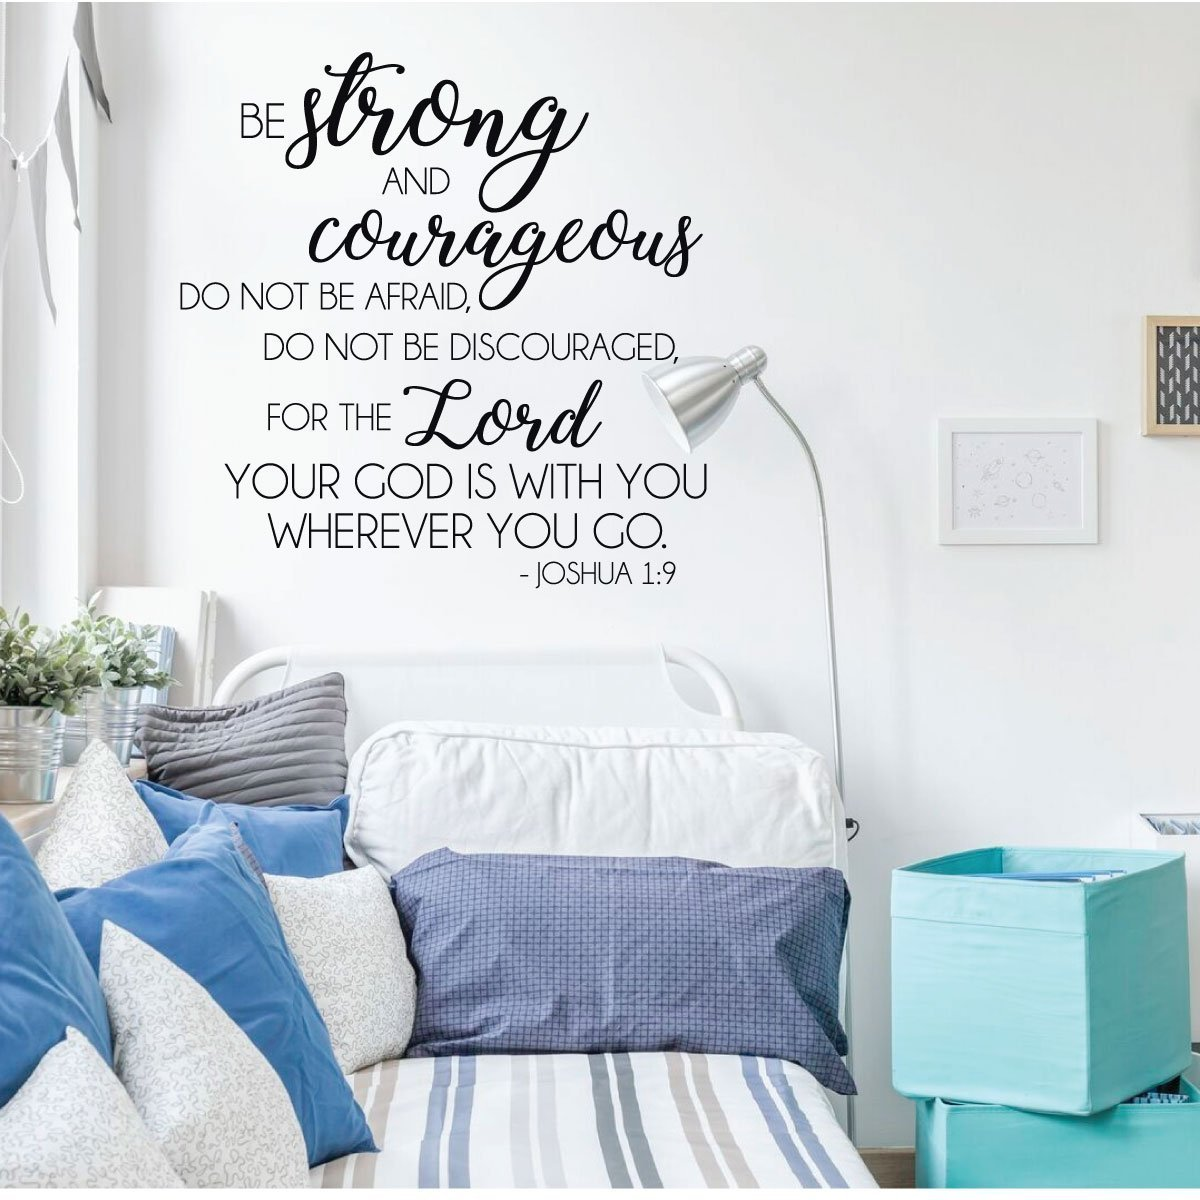 High Quality Christian Wall Decal   Bible Verse Wall Decal   Joshua 1:9   Be Strong ...